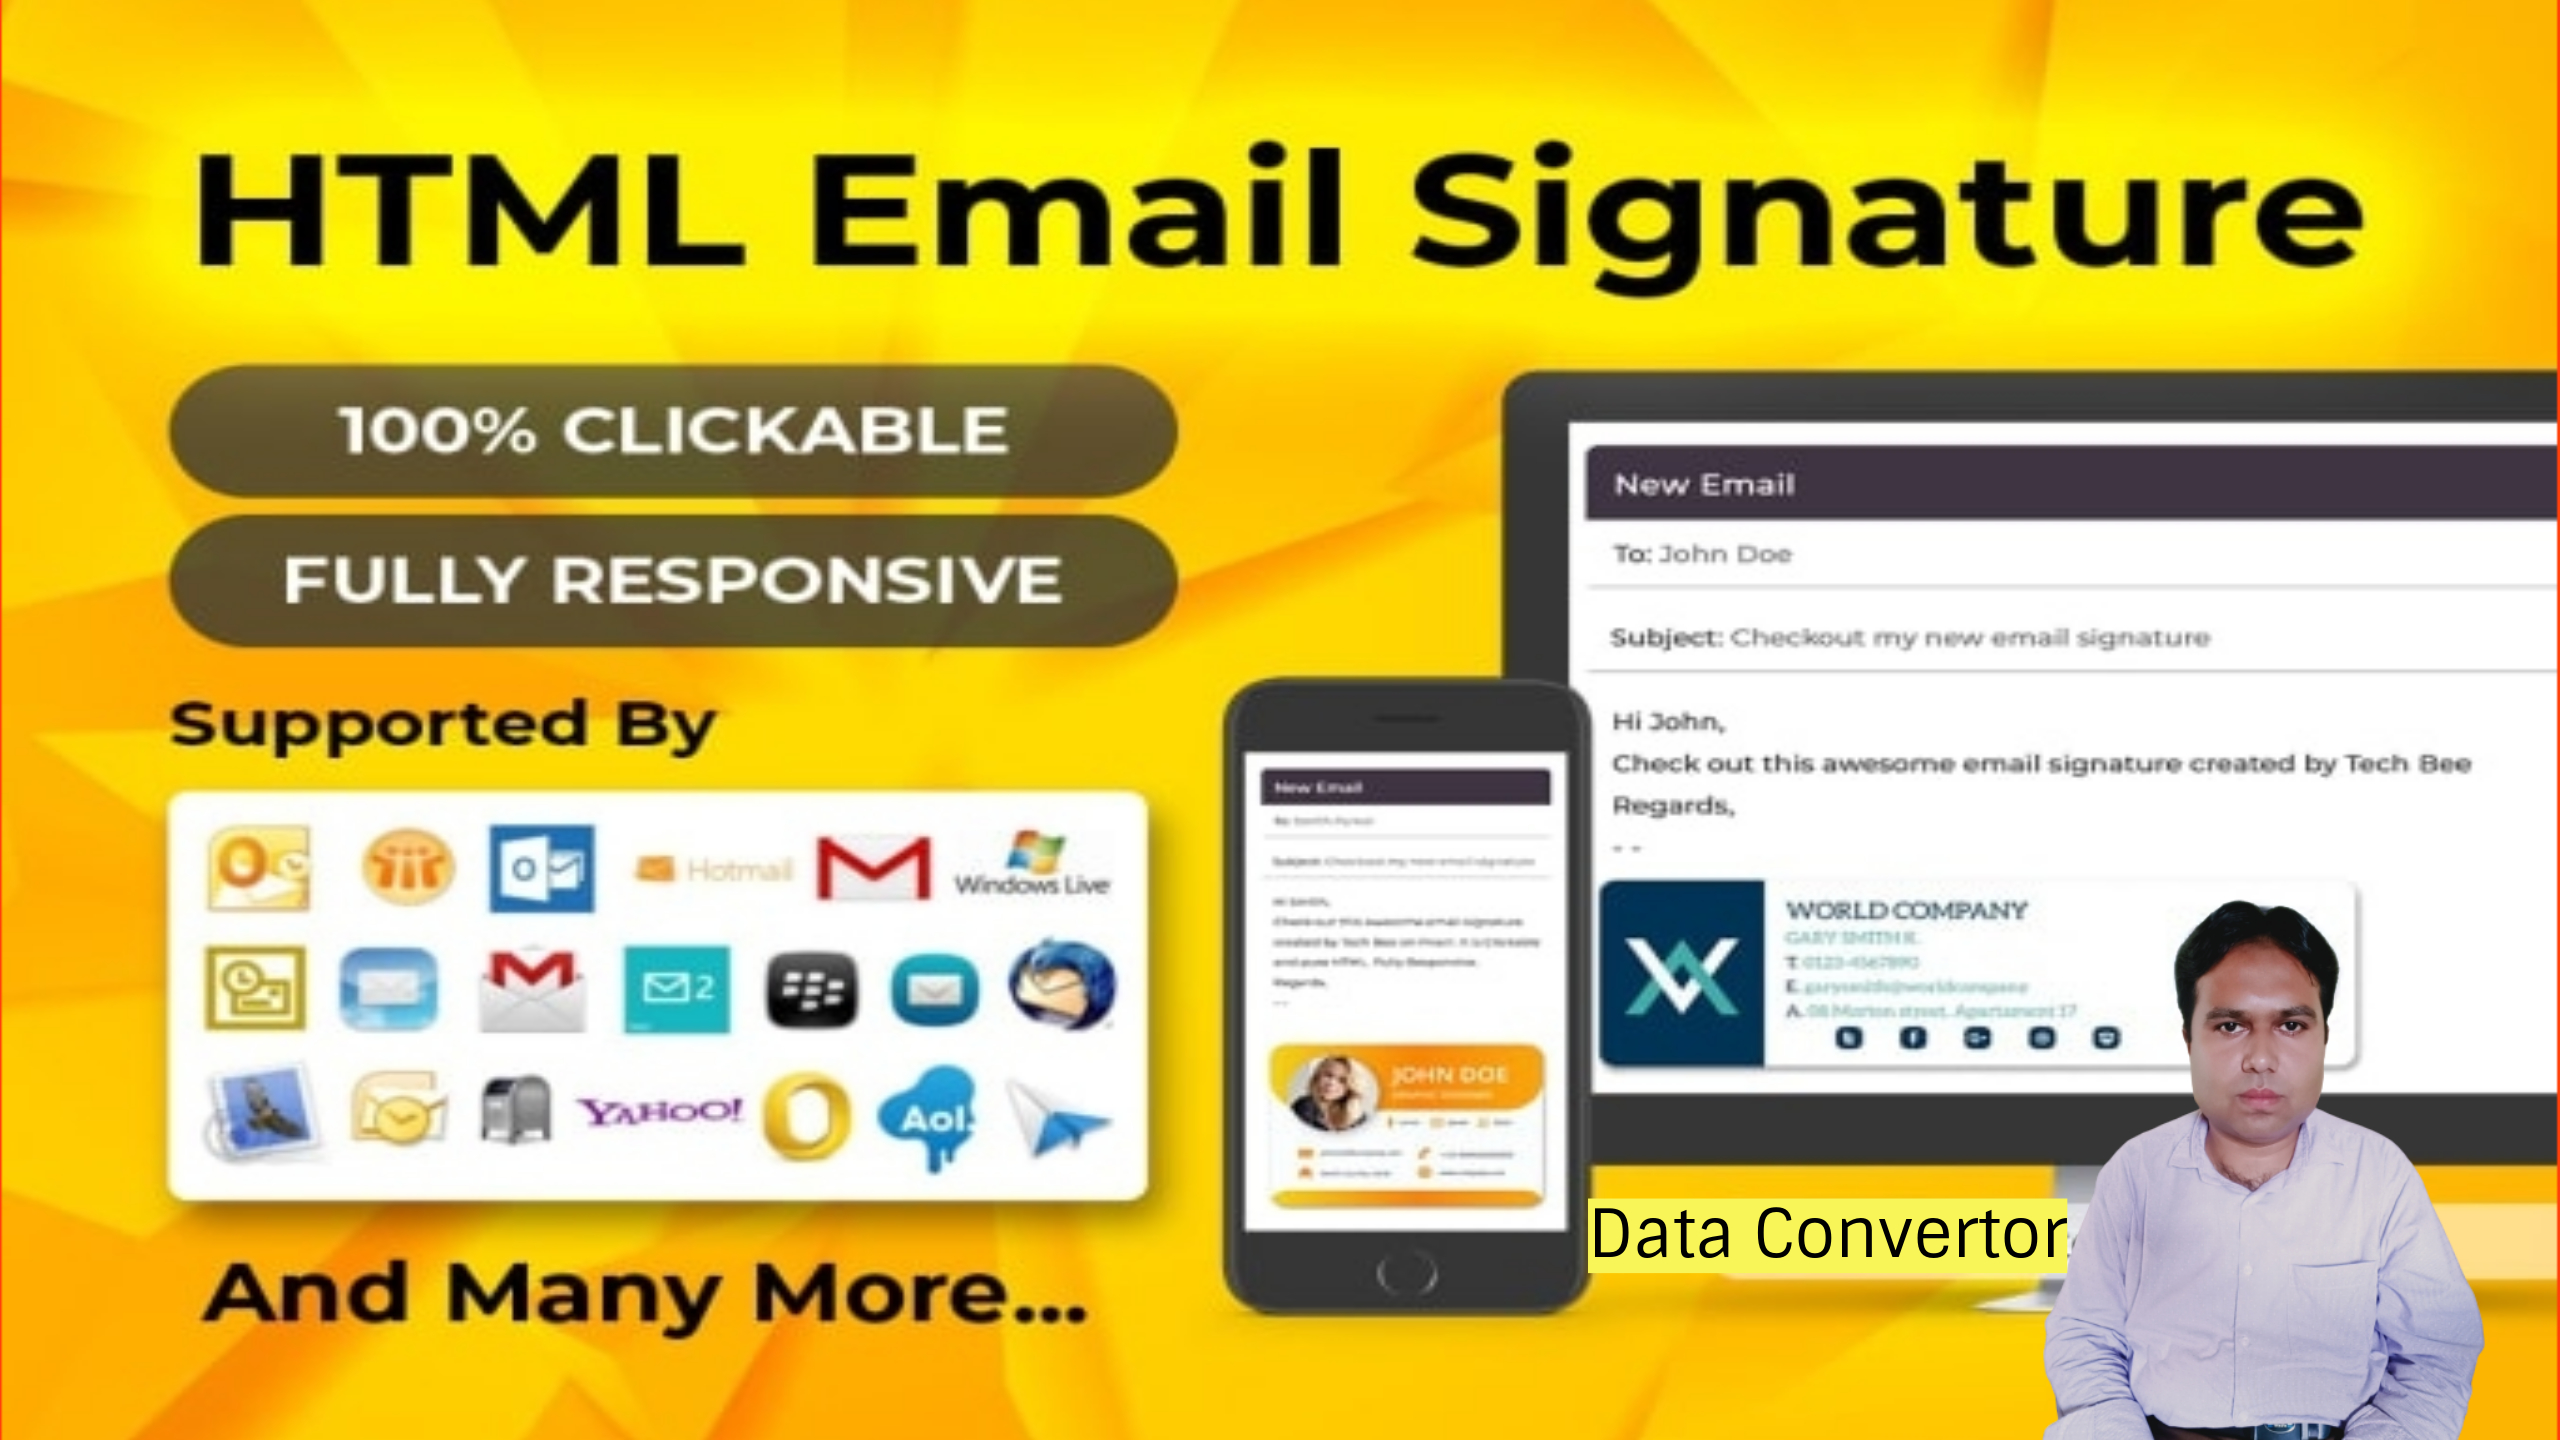 Creation of HTML email Signature and Data Converter any type